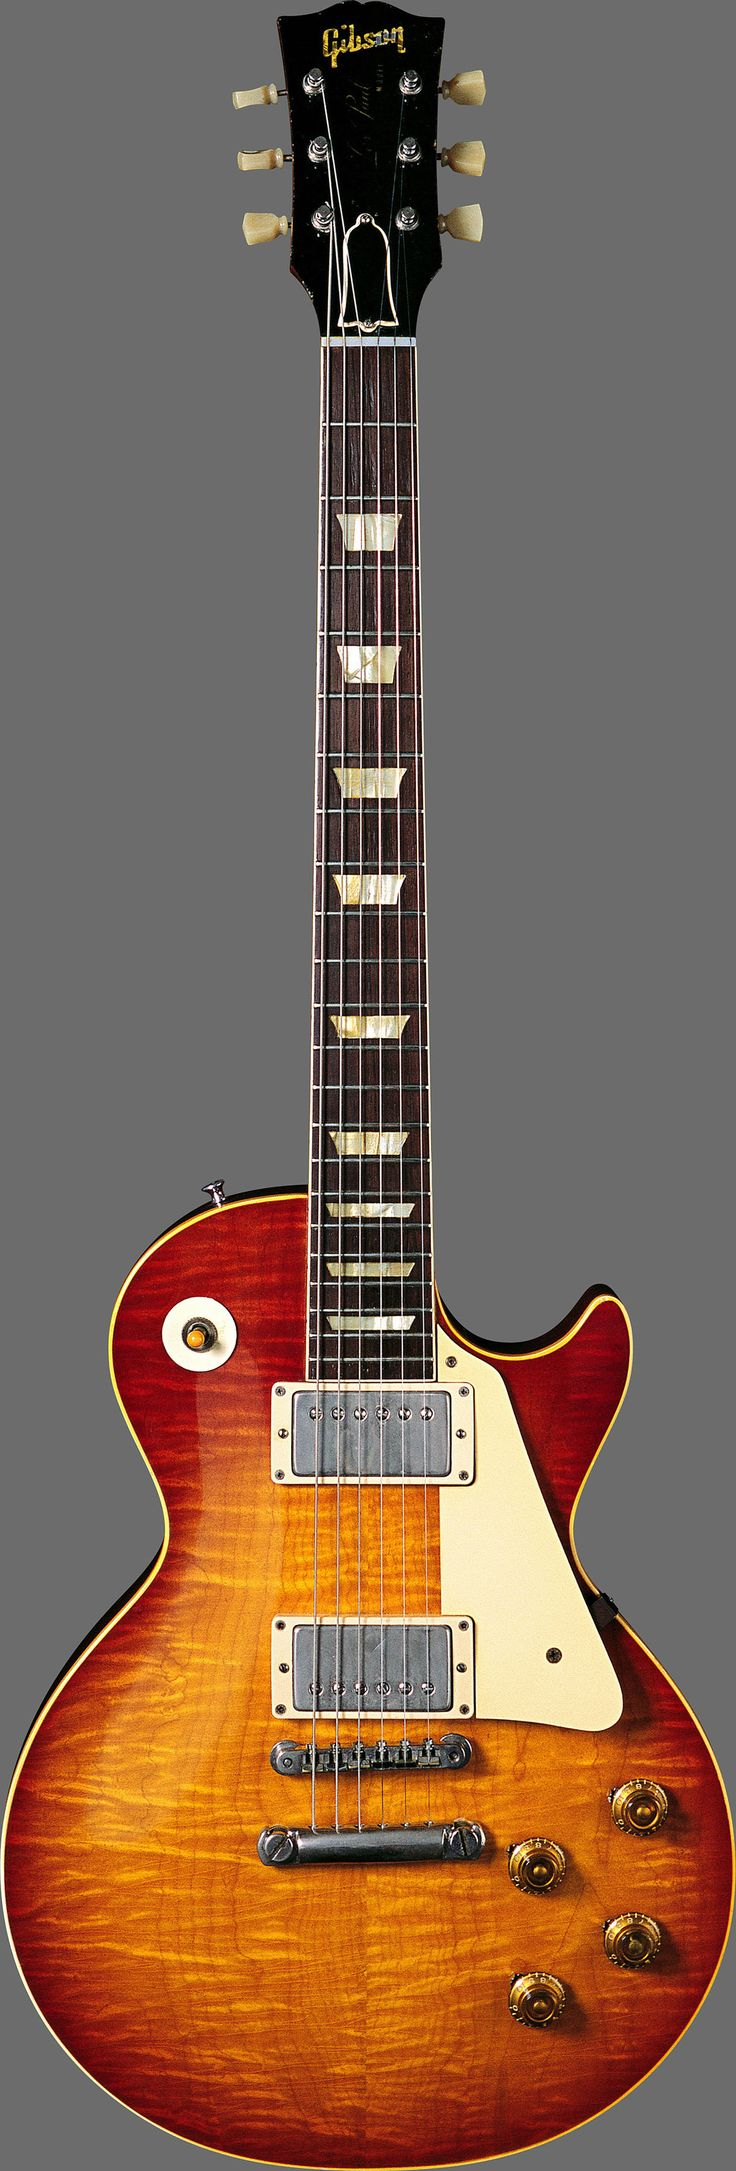 Gibson Les Paul- My life is now ruined after realizing that affording one of these a long way away....